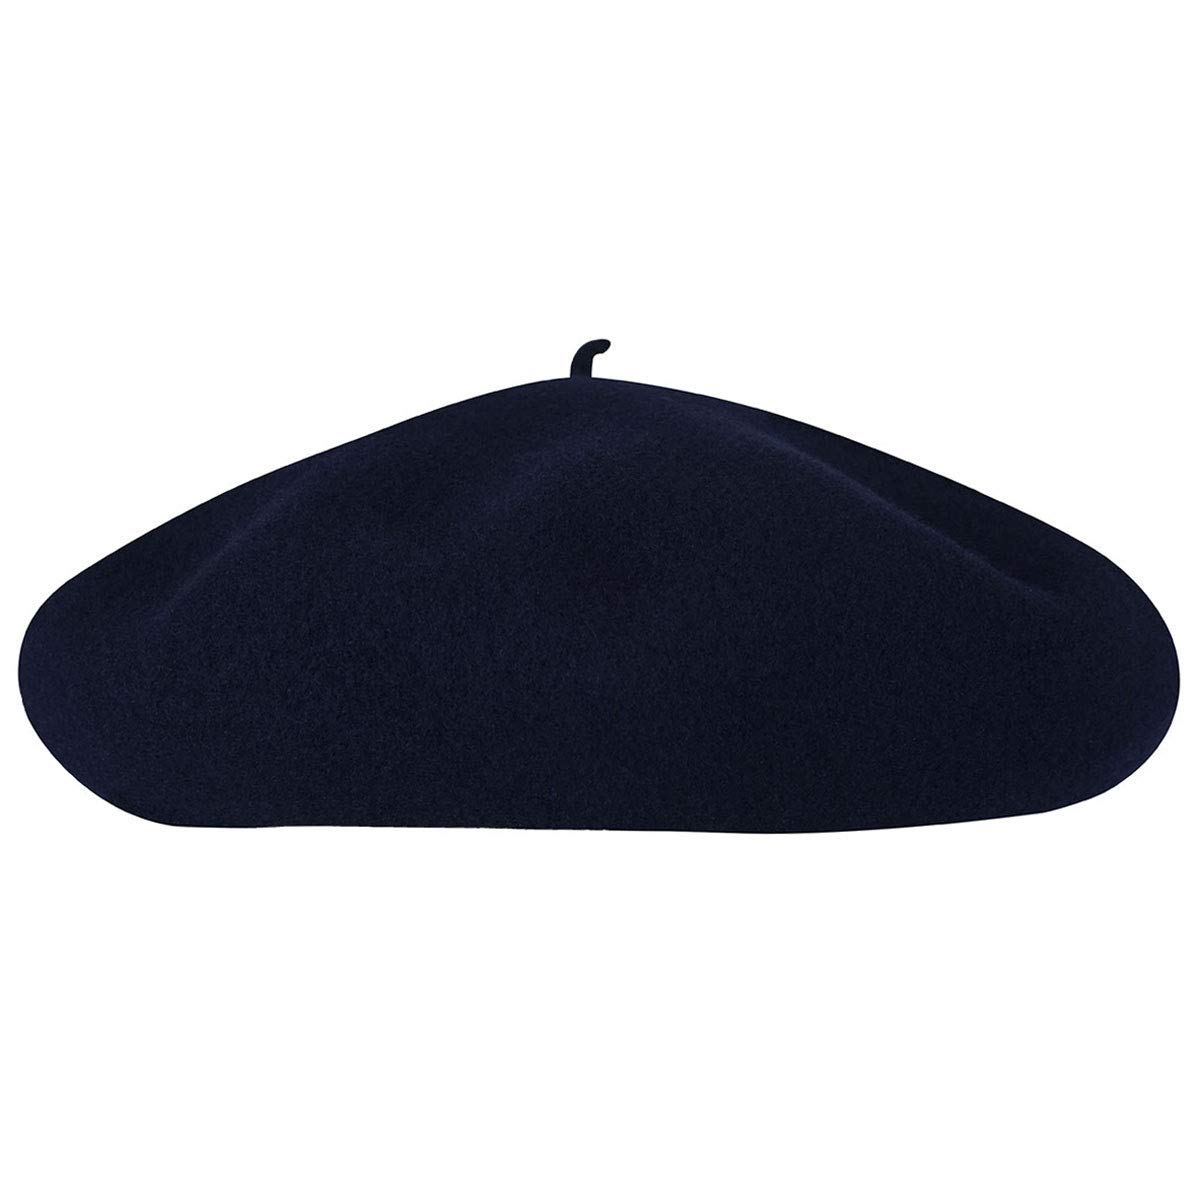 Kangol Men's Anglobasque Beret, From the Heritage Collection, Dark Blue (Large) by Kangol (Image #3)